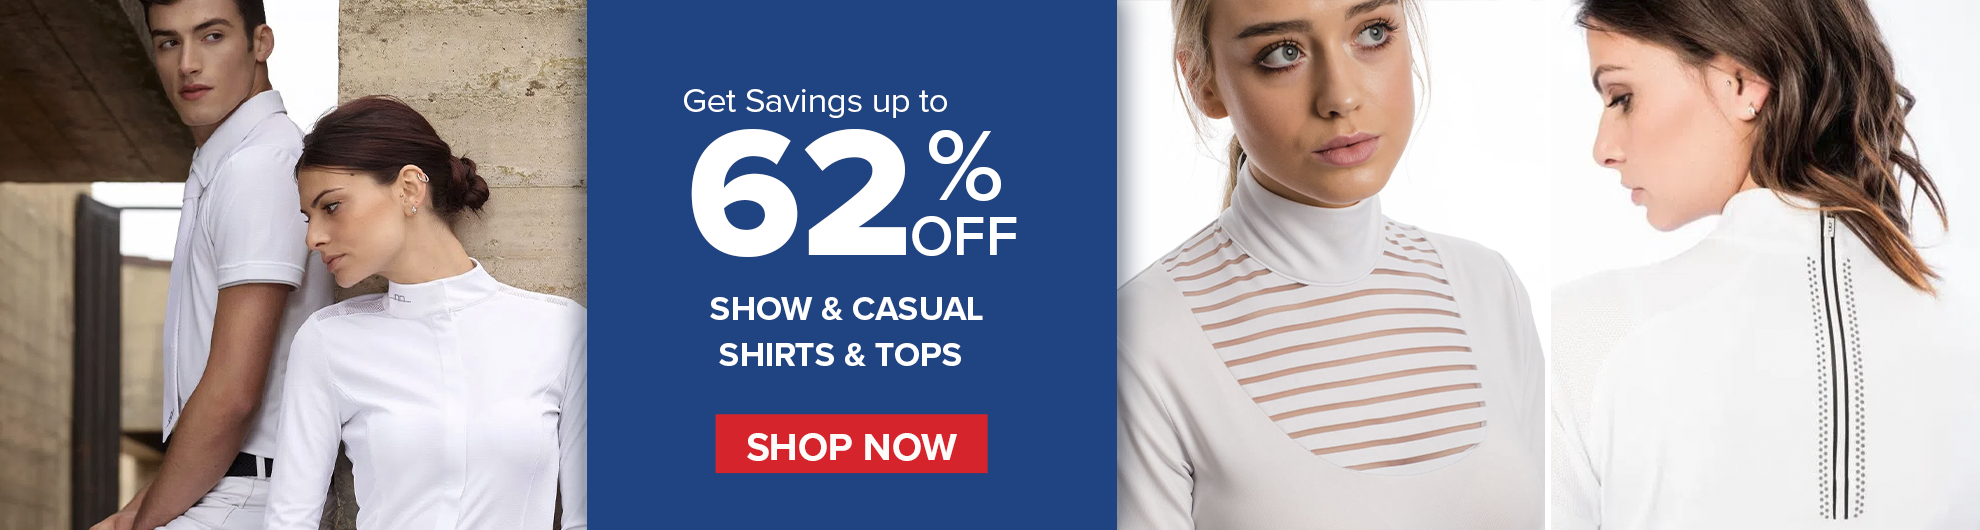 Show and Casual Shirts for Eventers